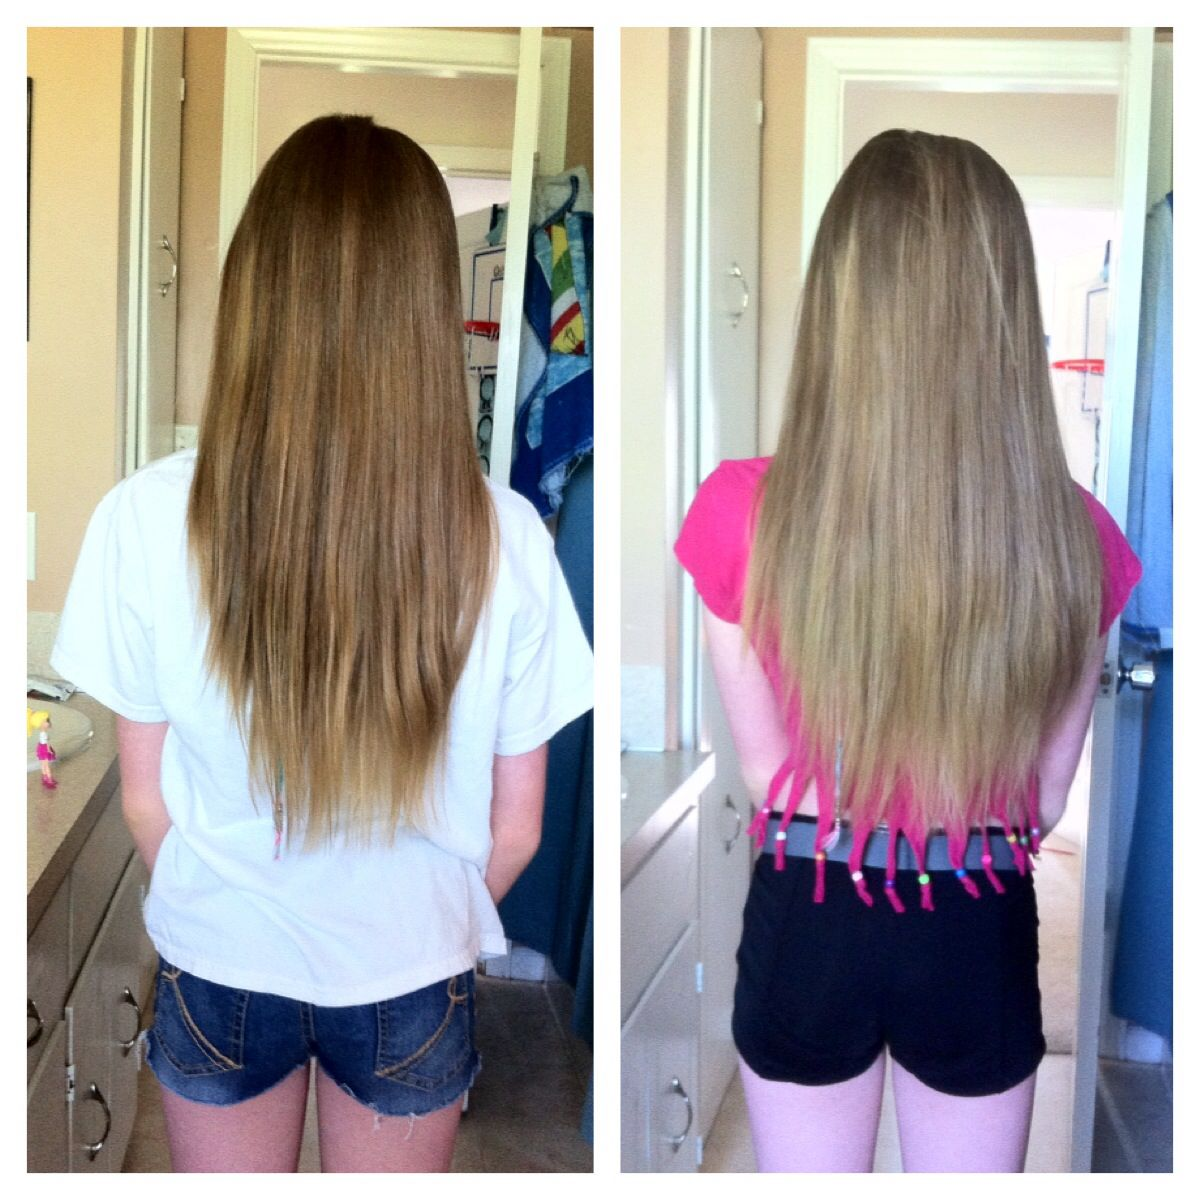 Lighten Your Hair With Lemon Juice Just Squeeze Lemon Juice In A Spray Bottle Add Some Water Lighten Hair Naturally How To Lighten Hair Natural Hair Styles